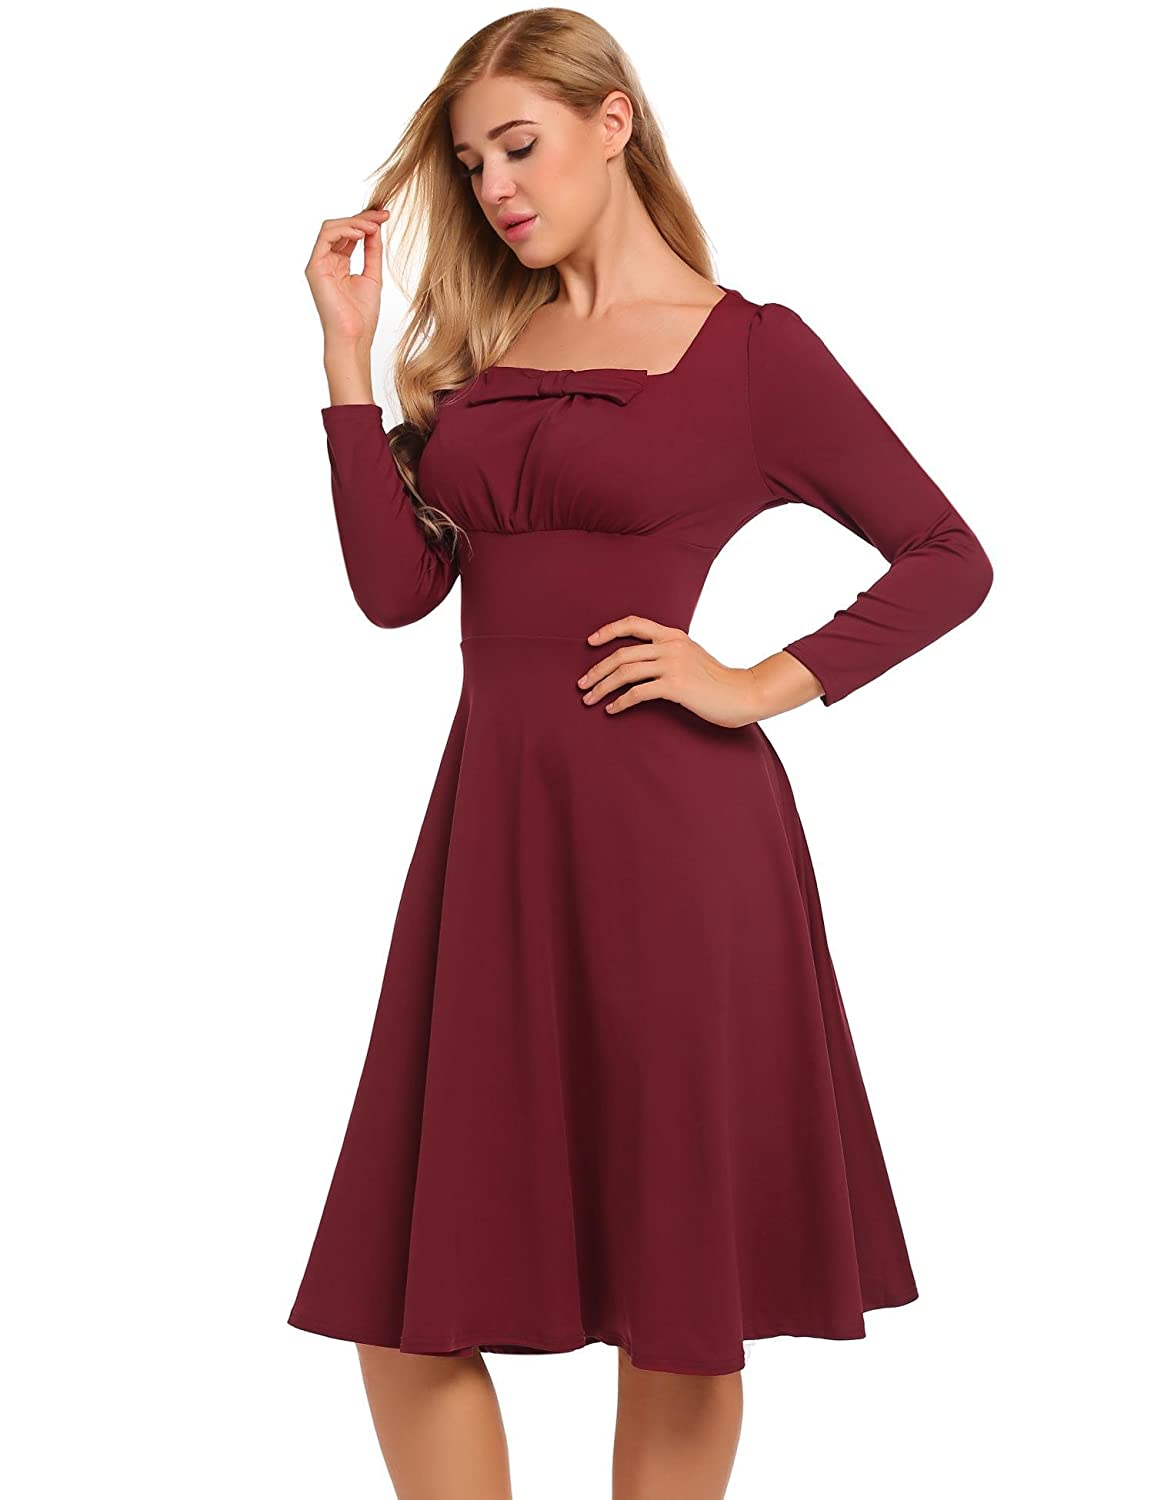 29ed9d975b1 Womens Evening Dresses With Sleeves - Gomes Weine AG